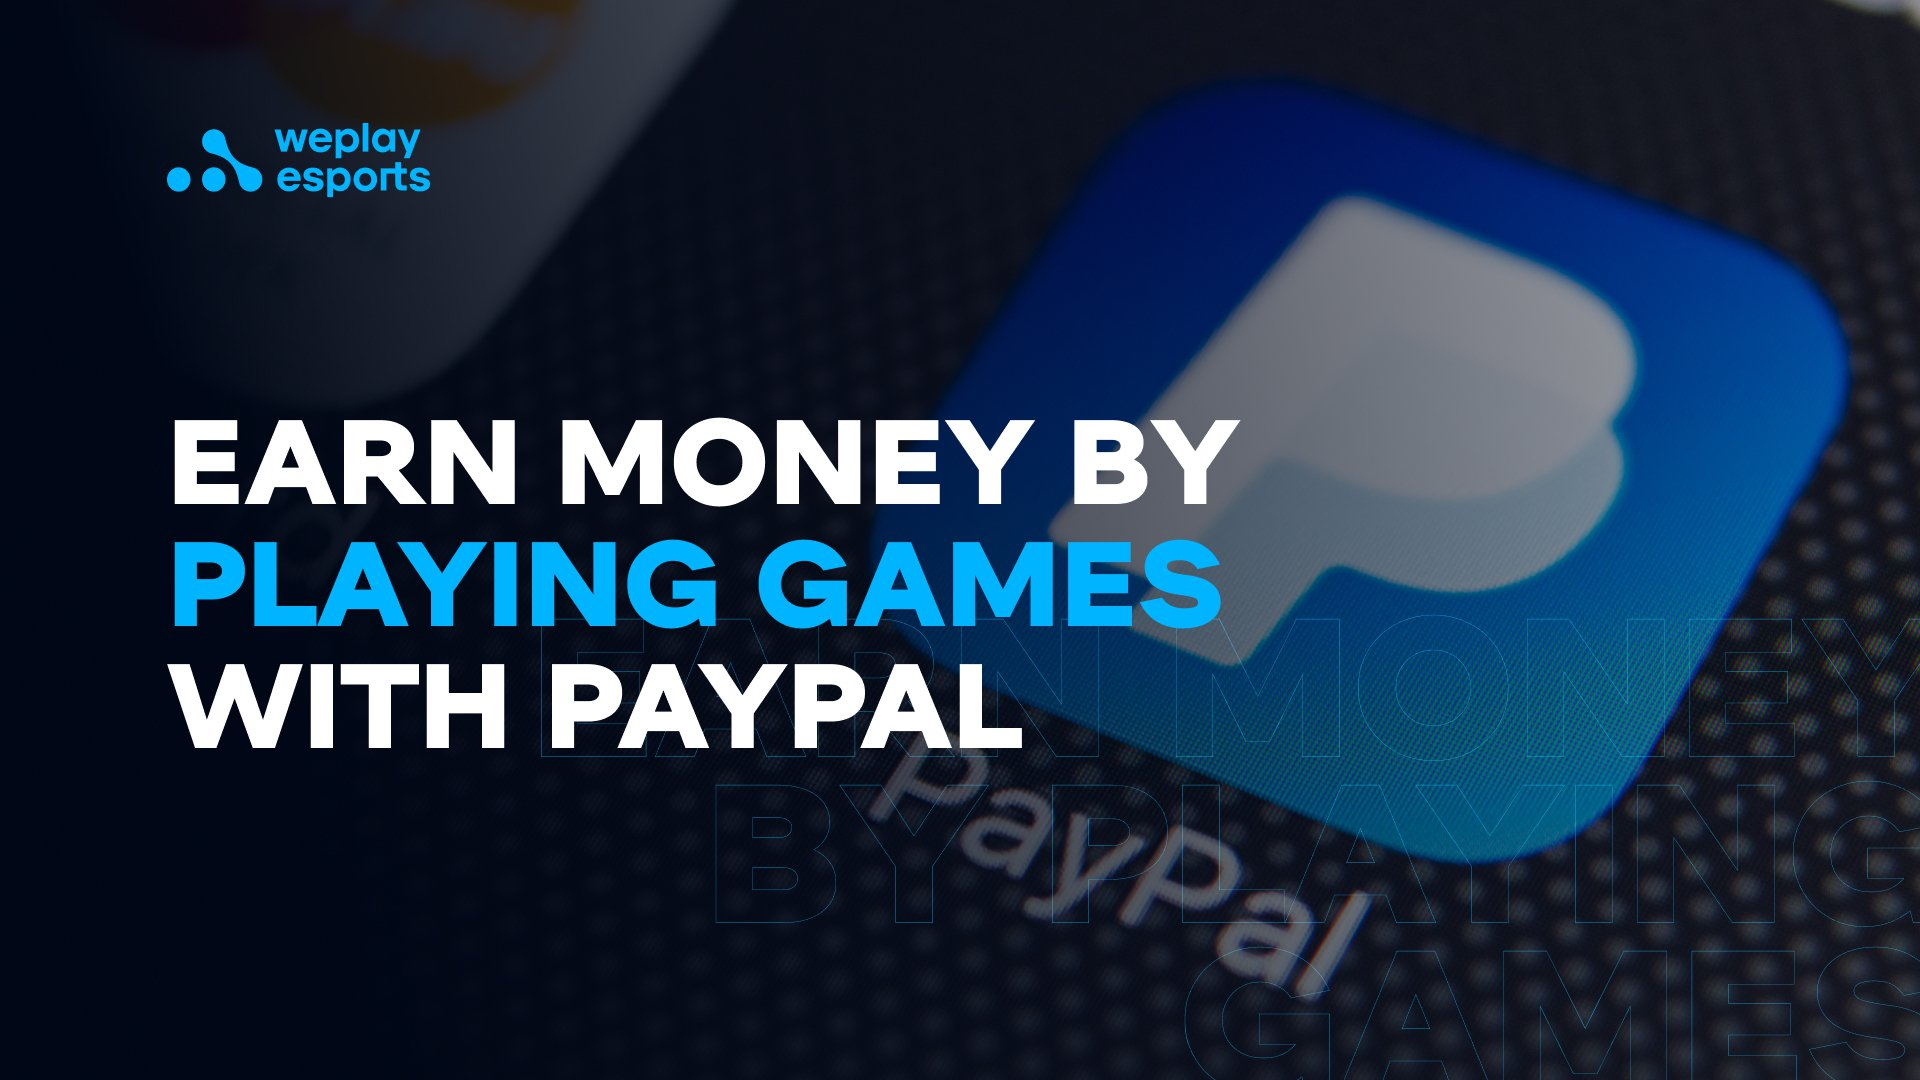 Earn Money by Playing Games with Paypal